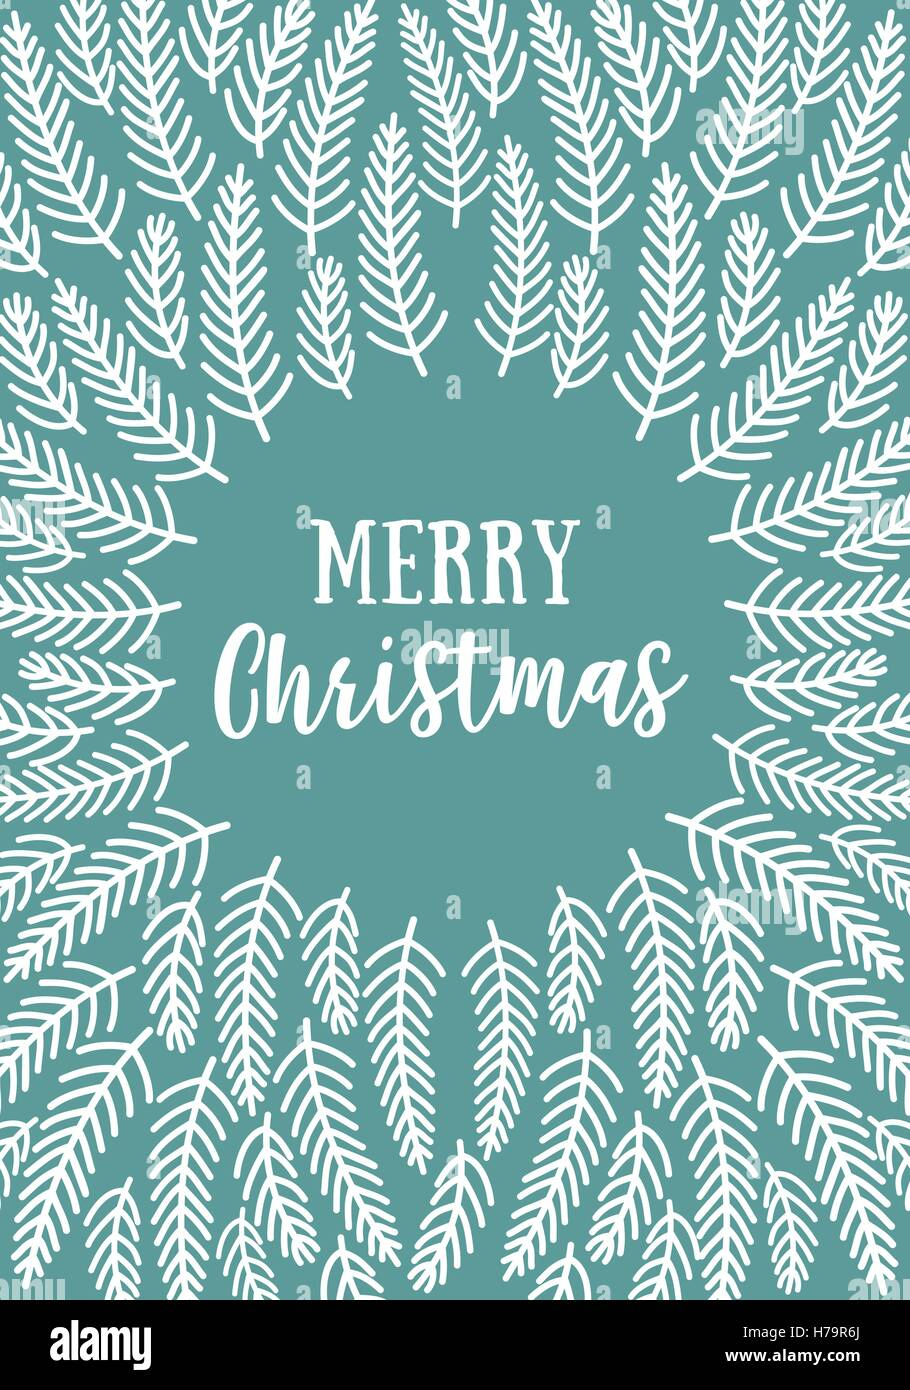 Simple modern Christmas card with hand drawn fir tree branches, vector illustration - Stock Image